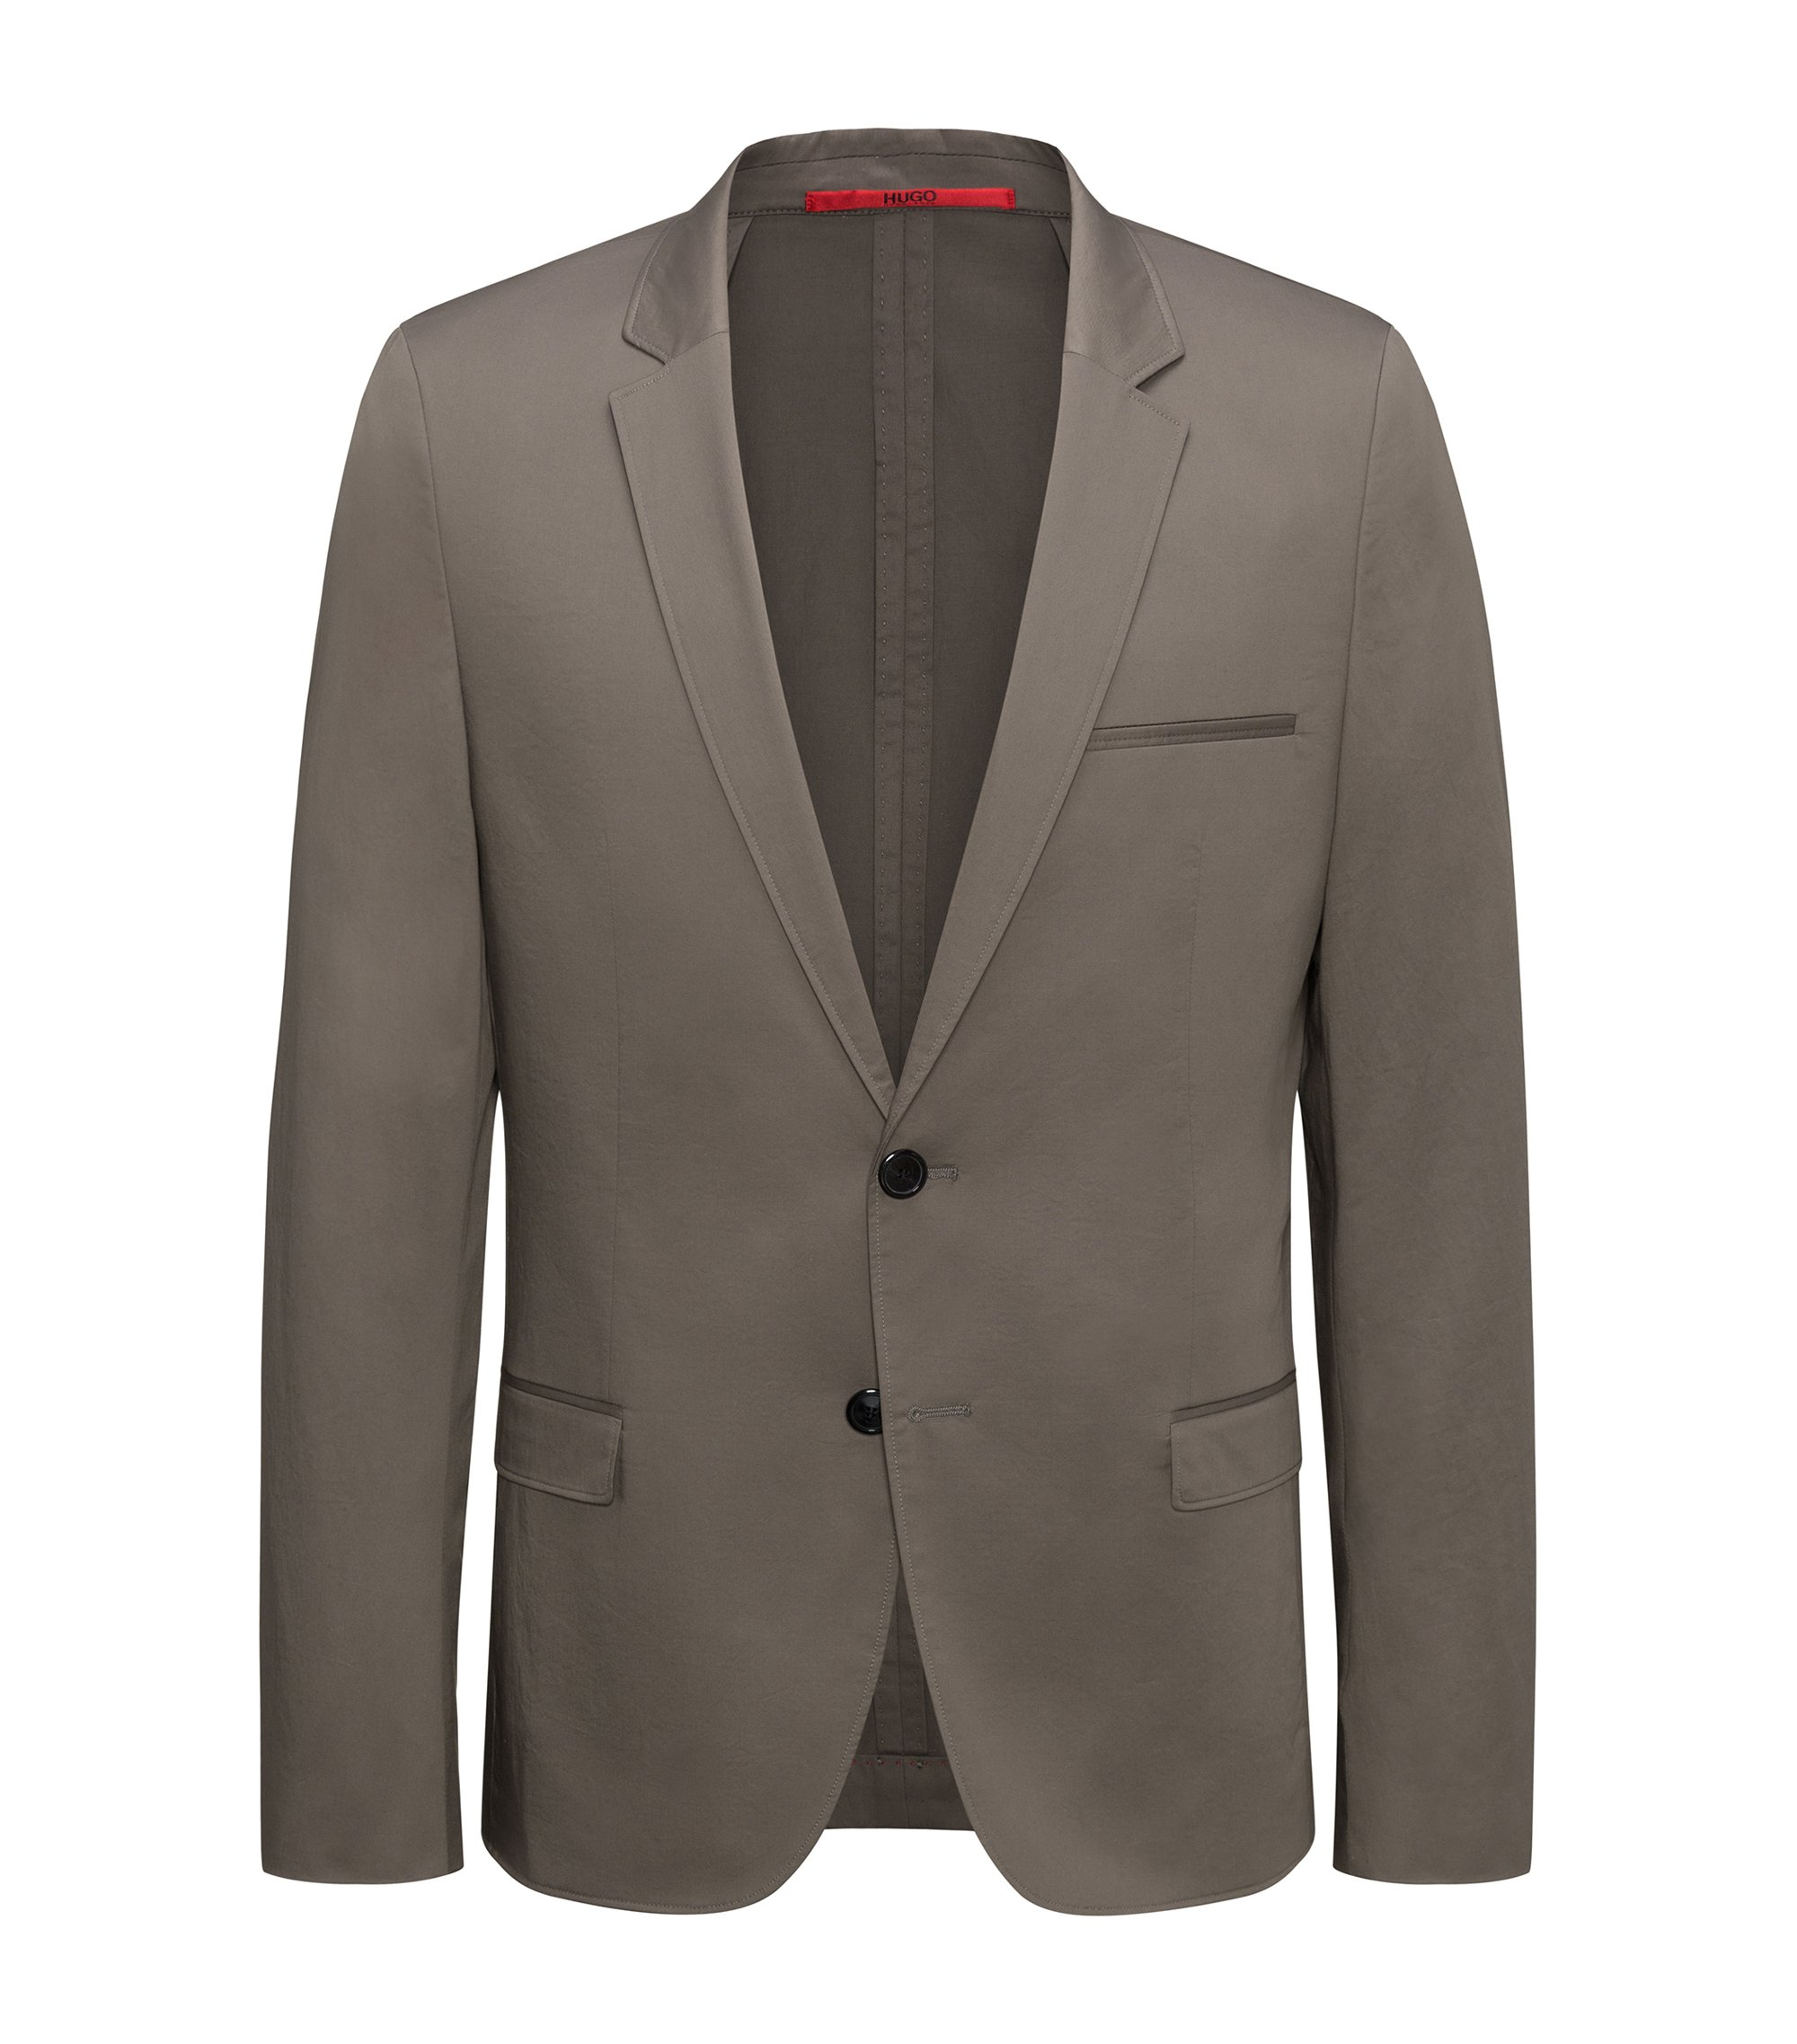 Veste Extra Slim Fit non doublée en coton stretch, Marron